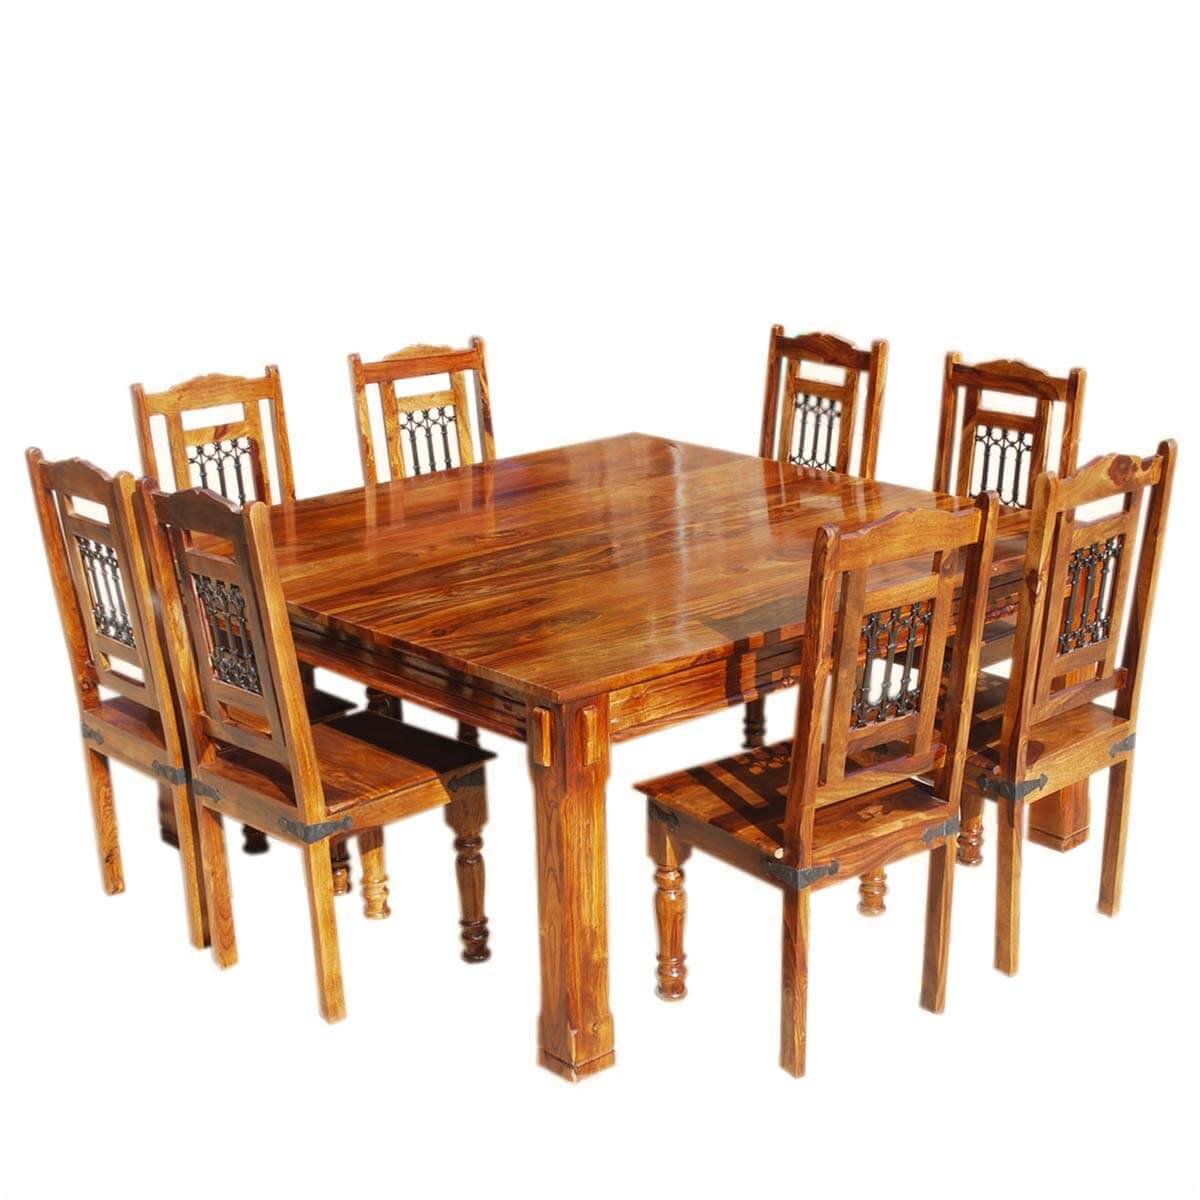 Solid wood rustic square dining table chairs set for Rustic dining set